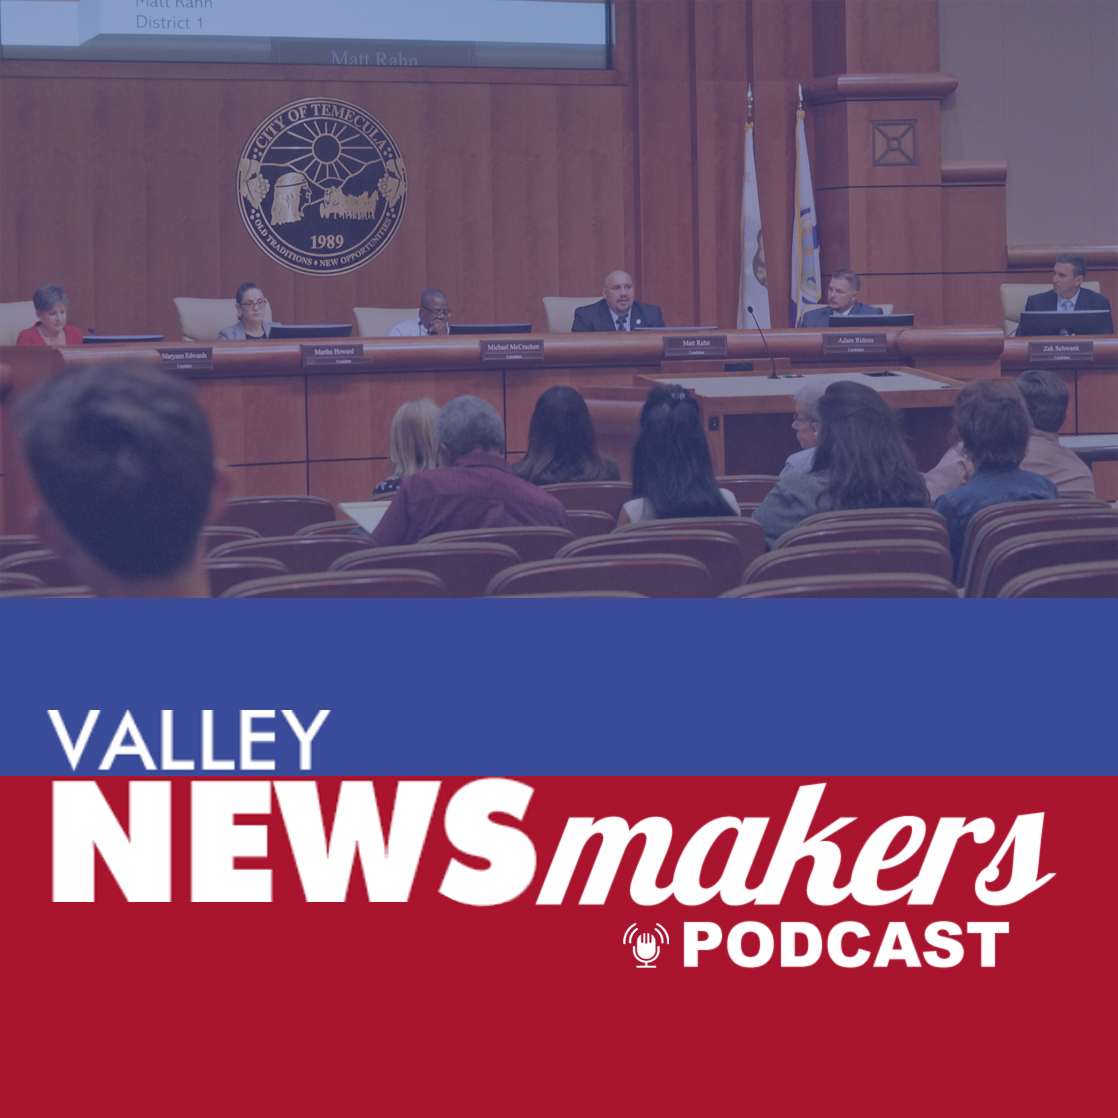 Valley Newsmakers Podcast: Temecula City Council Forum